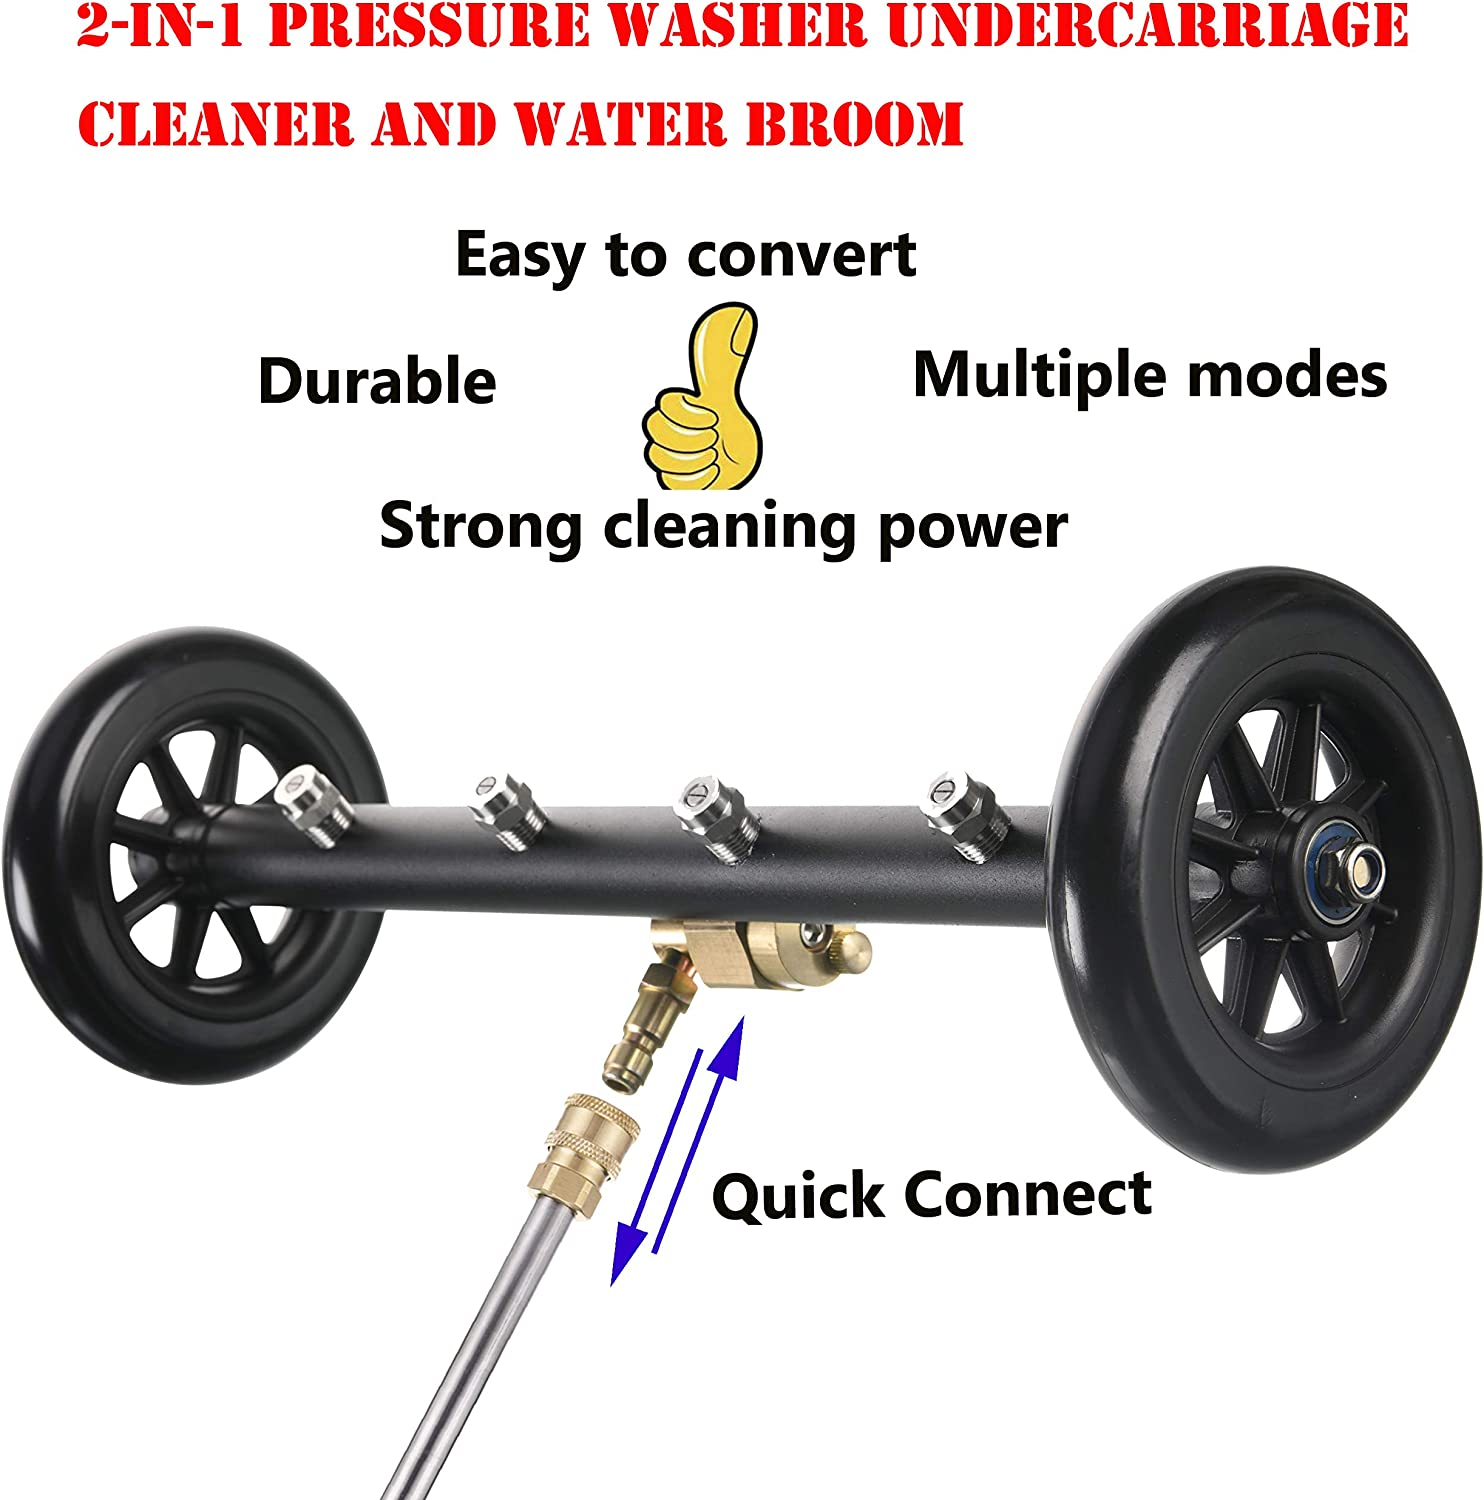 Pressure Washer Undercarriage Cleaner 2In1 Power 16 Inch Water Broom